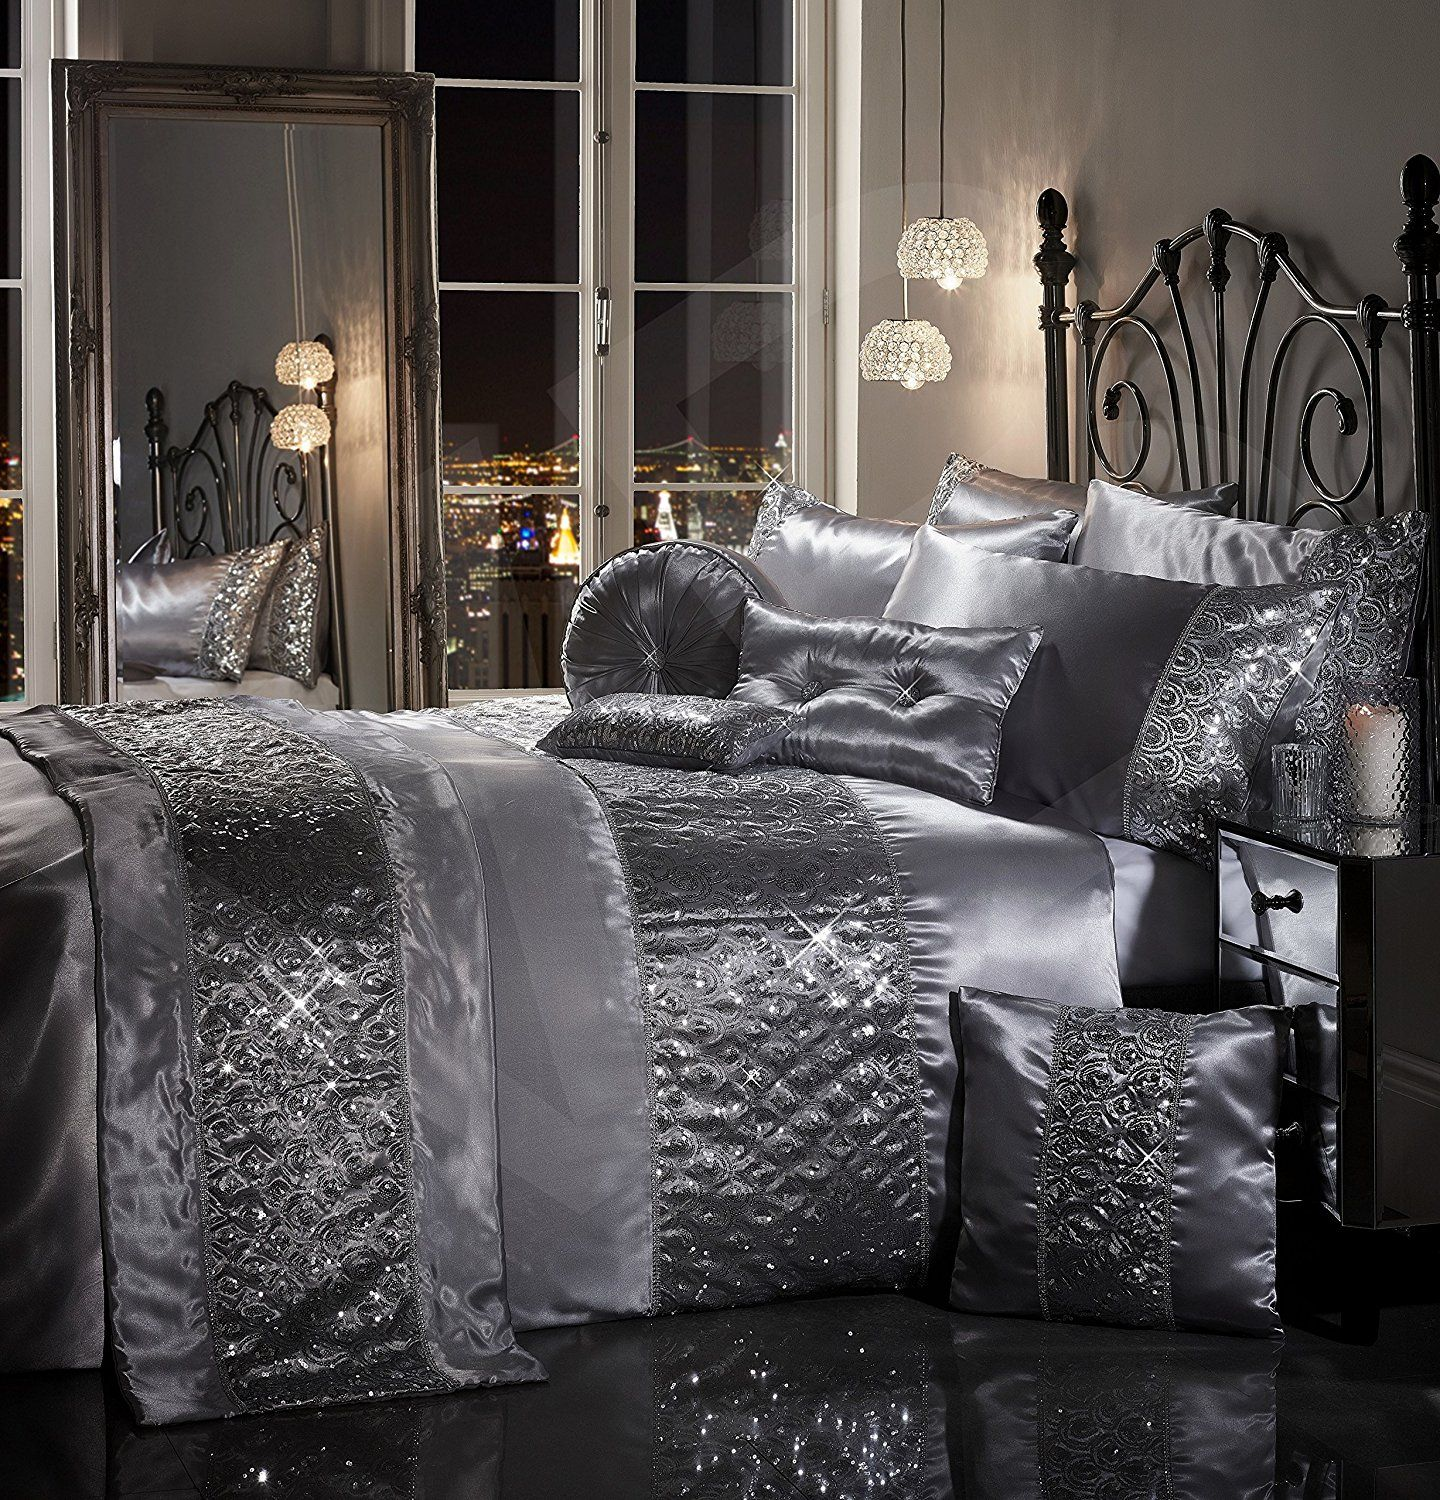 Sparkle Sequin Luxury Diamante Bedding Bedroom Collection By Viceroybedding Silver Grey Super King Duvet C Silver Bedroom Decor Silver Bedroom Elegant Bedroom